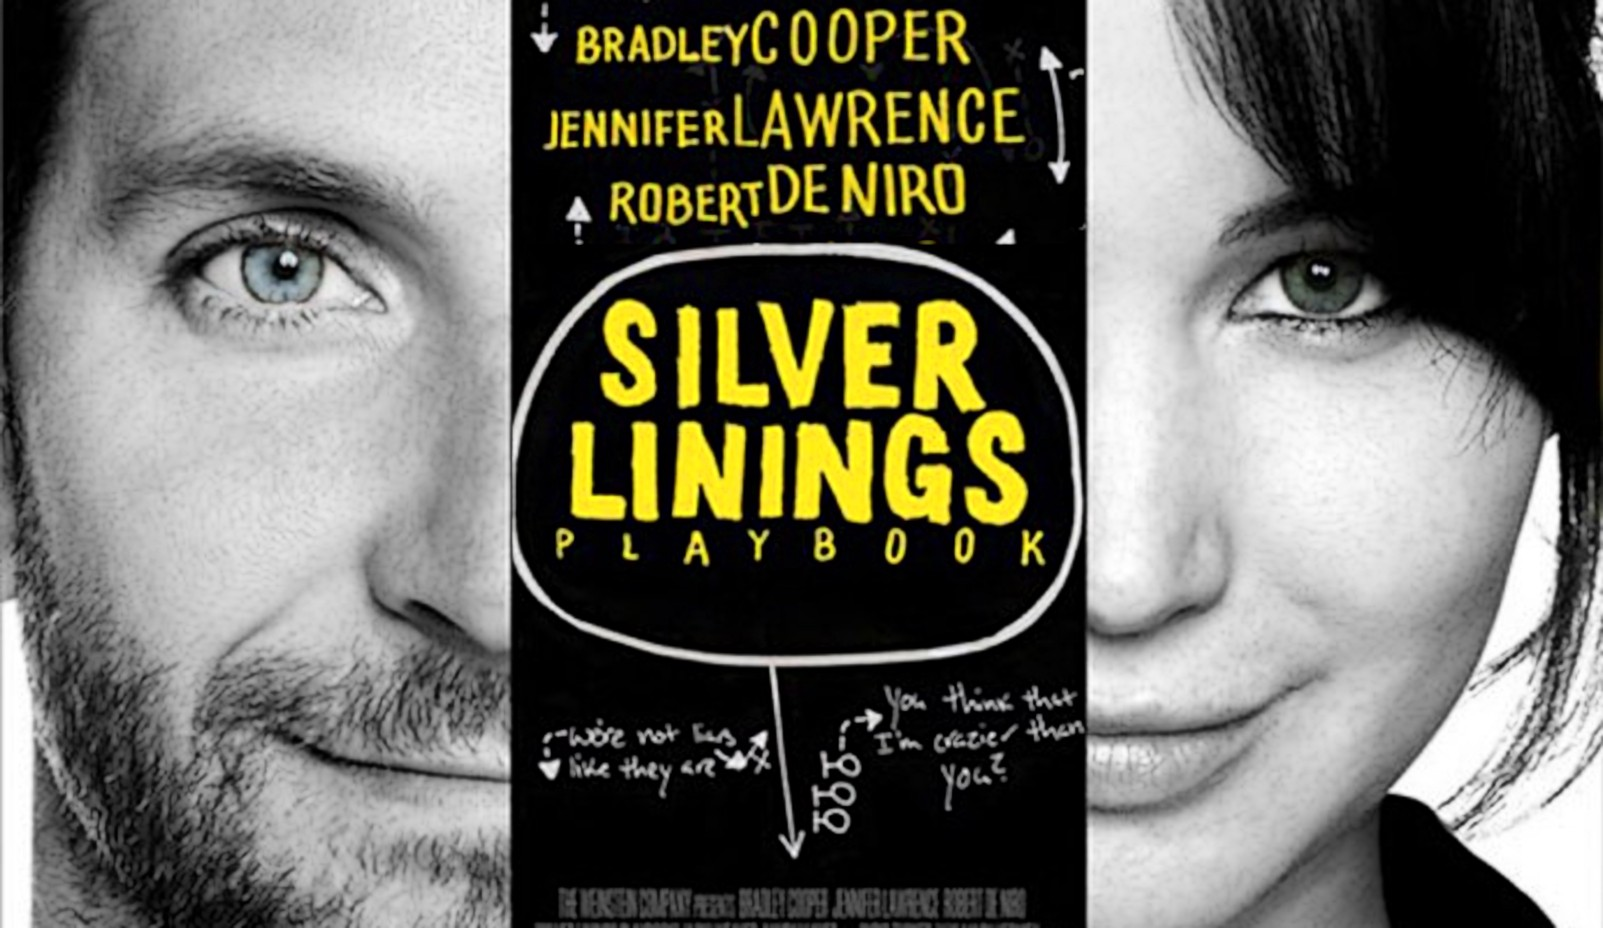 Bradley Cooper Jennifer Lawrence silver linings playbook